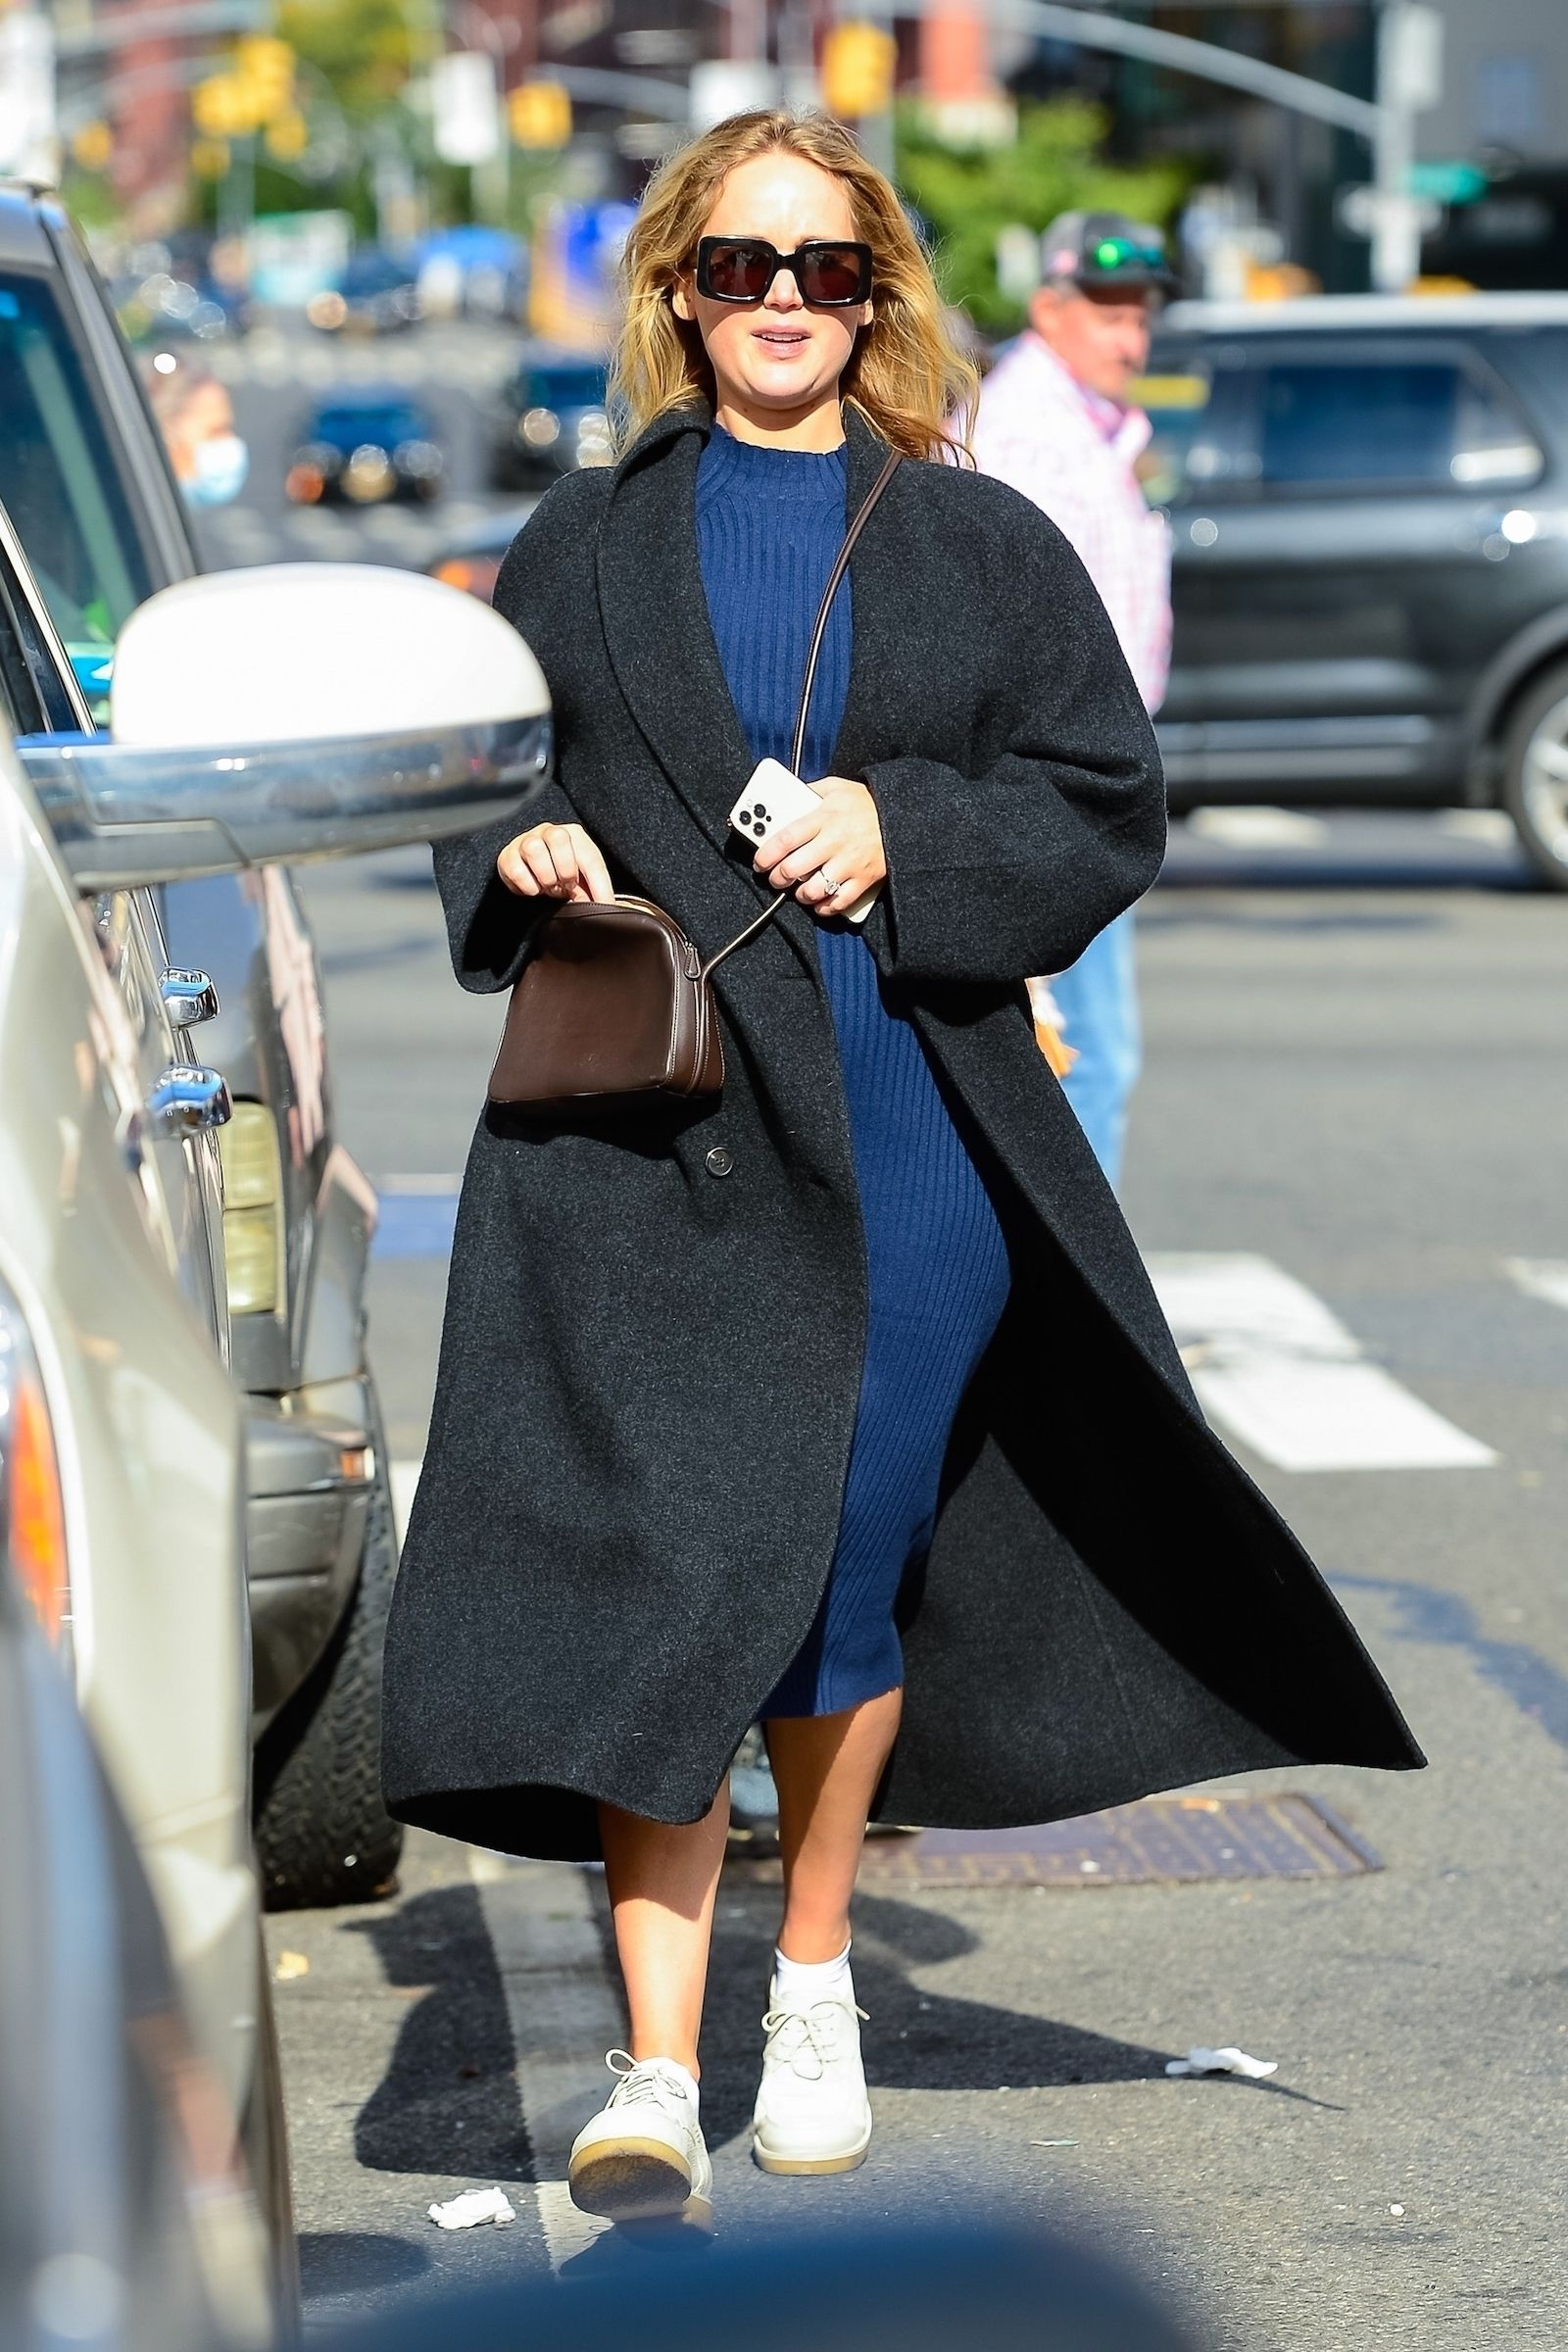 Jennifer Lawrence Is Ready for Fall In Her Warm Maternity Look